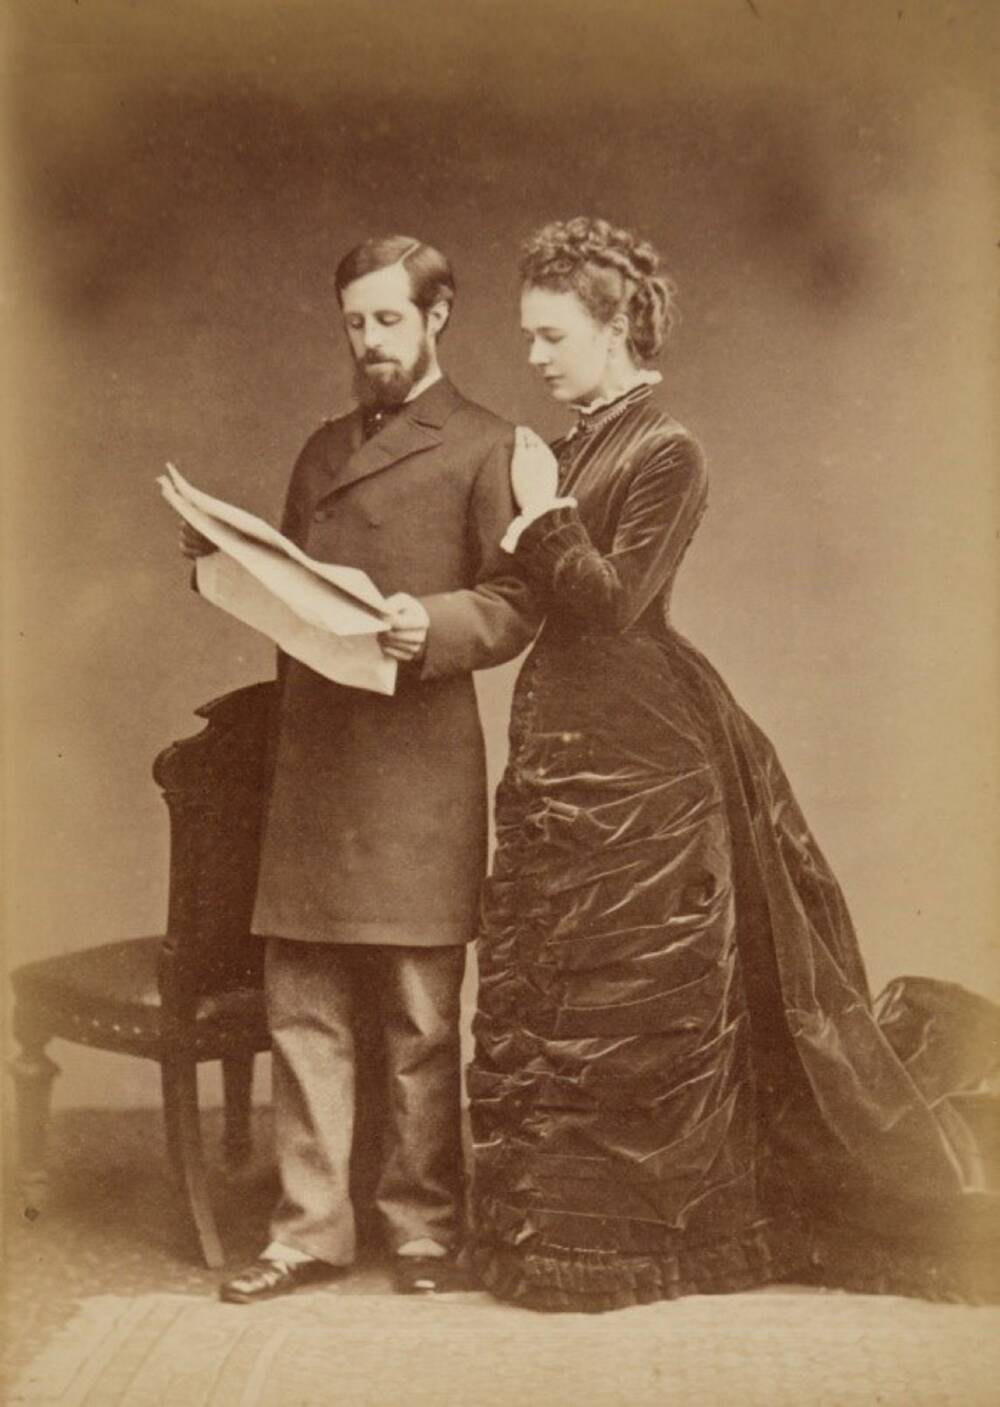 A sepia photograph of a young couple standing together in a portrait studio. The lady on the right wears a long, black dress and rests her hand on the man's shoulder. The man on the left is reading a newspaper and stands beside a chair. He has a beard and wears a smart dark coat.